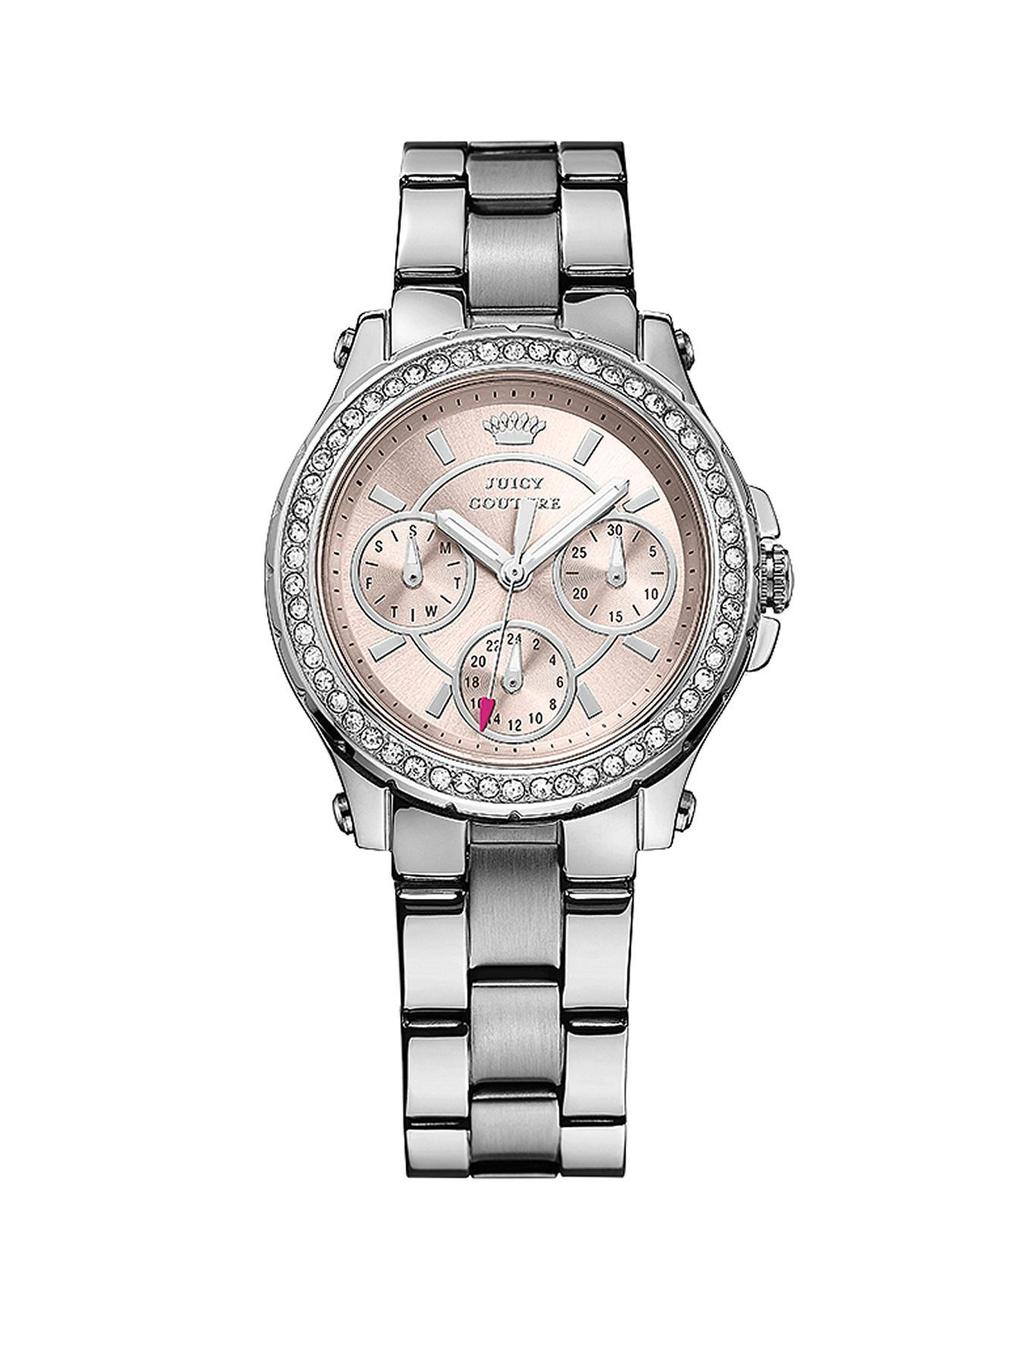 Pedigree Crystal Set Chronograph Stainless Steel Ladies Watch - secondary colour: blush; predominant colour: silver; occasions: casual, work, creative work; style: metal bracelet; size: standard; material: chain/metal; embellishment: crystals/glass; finish: metallic; pattern: plain; season: s/s 2014